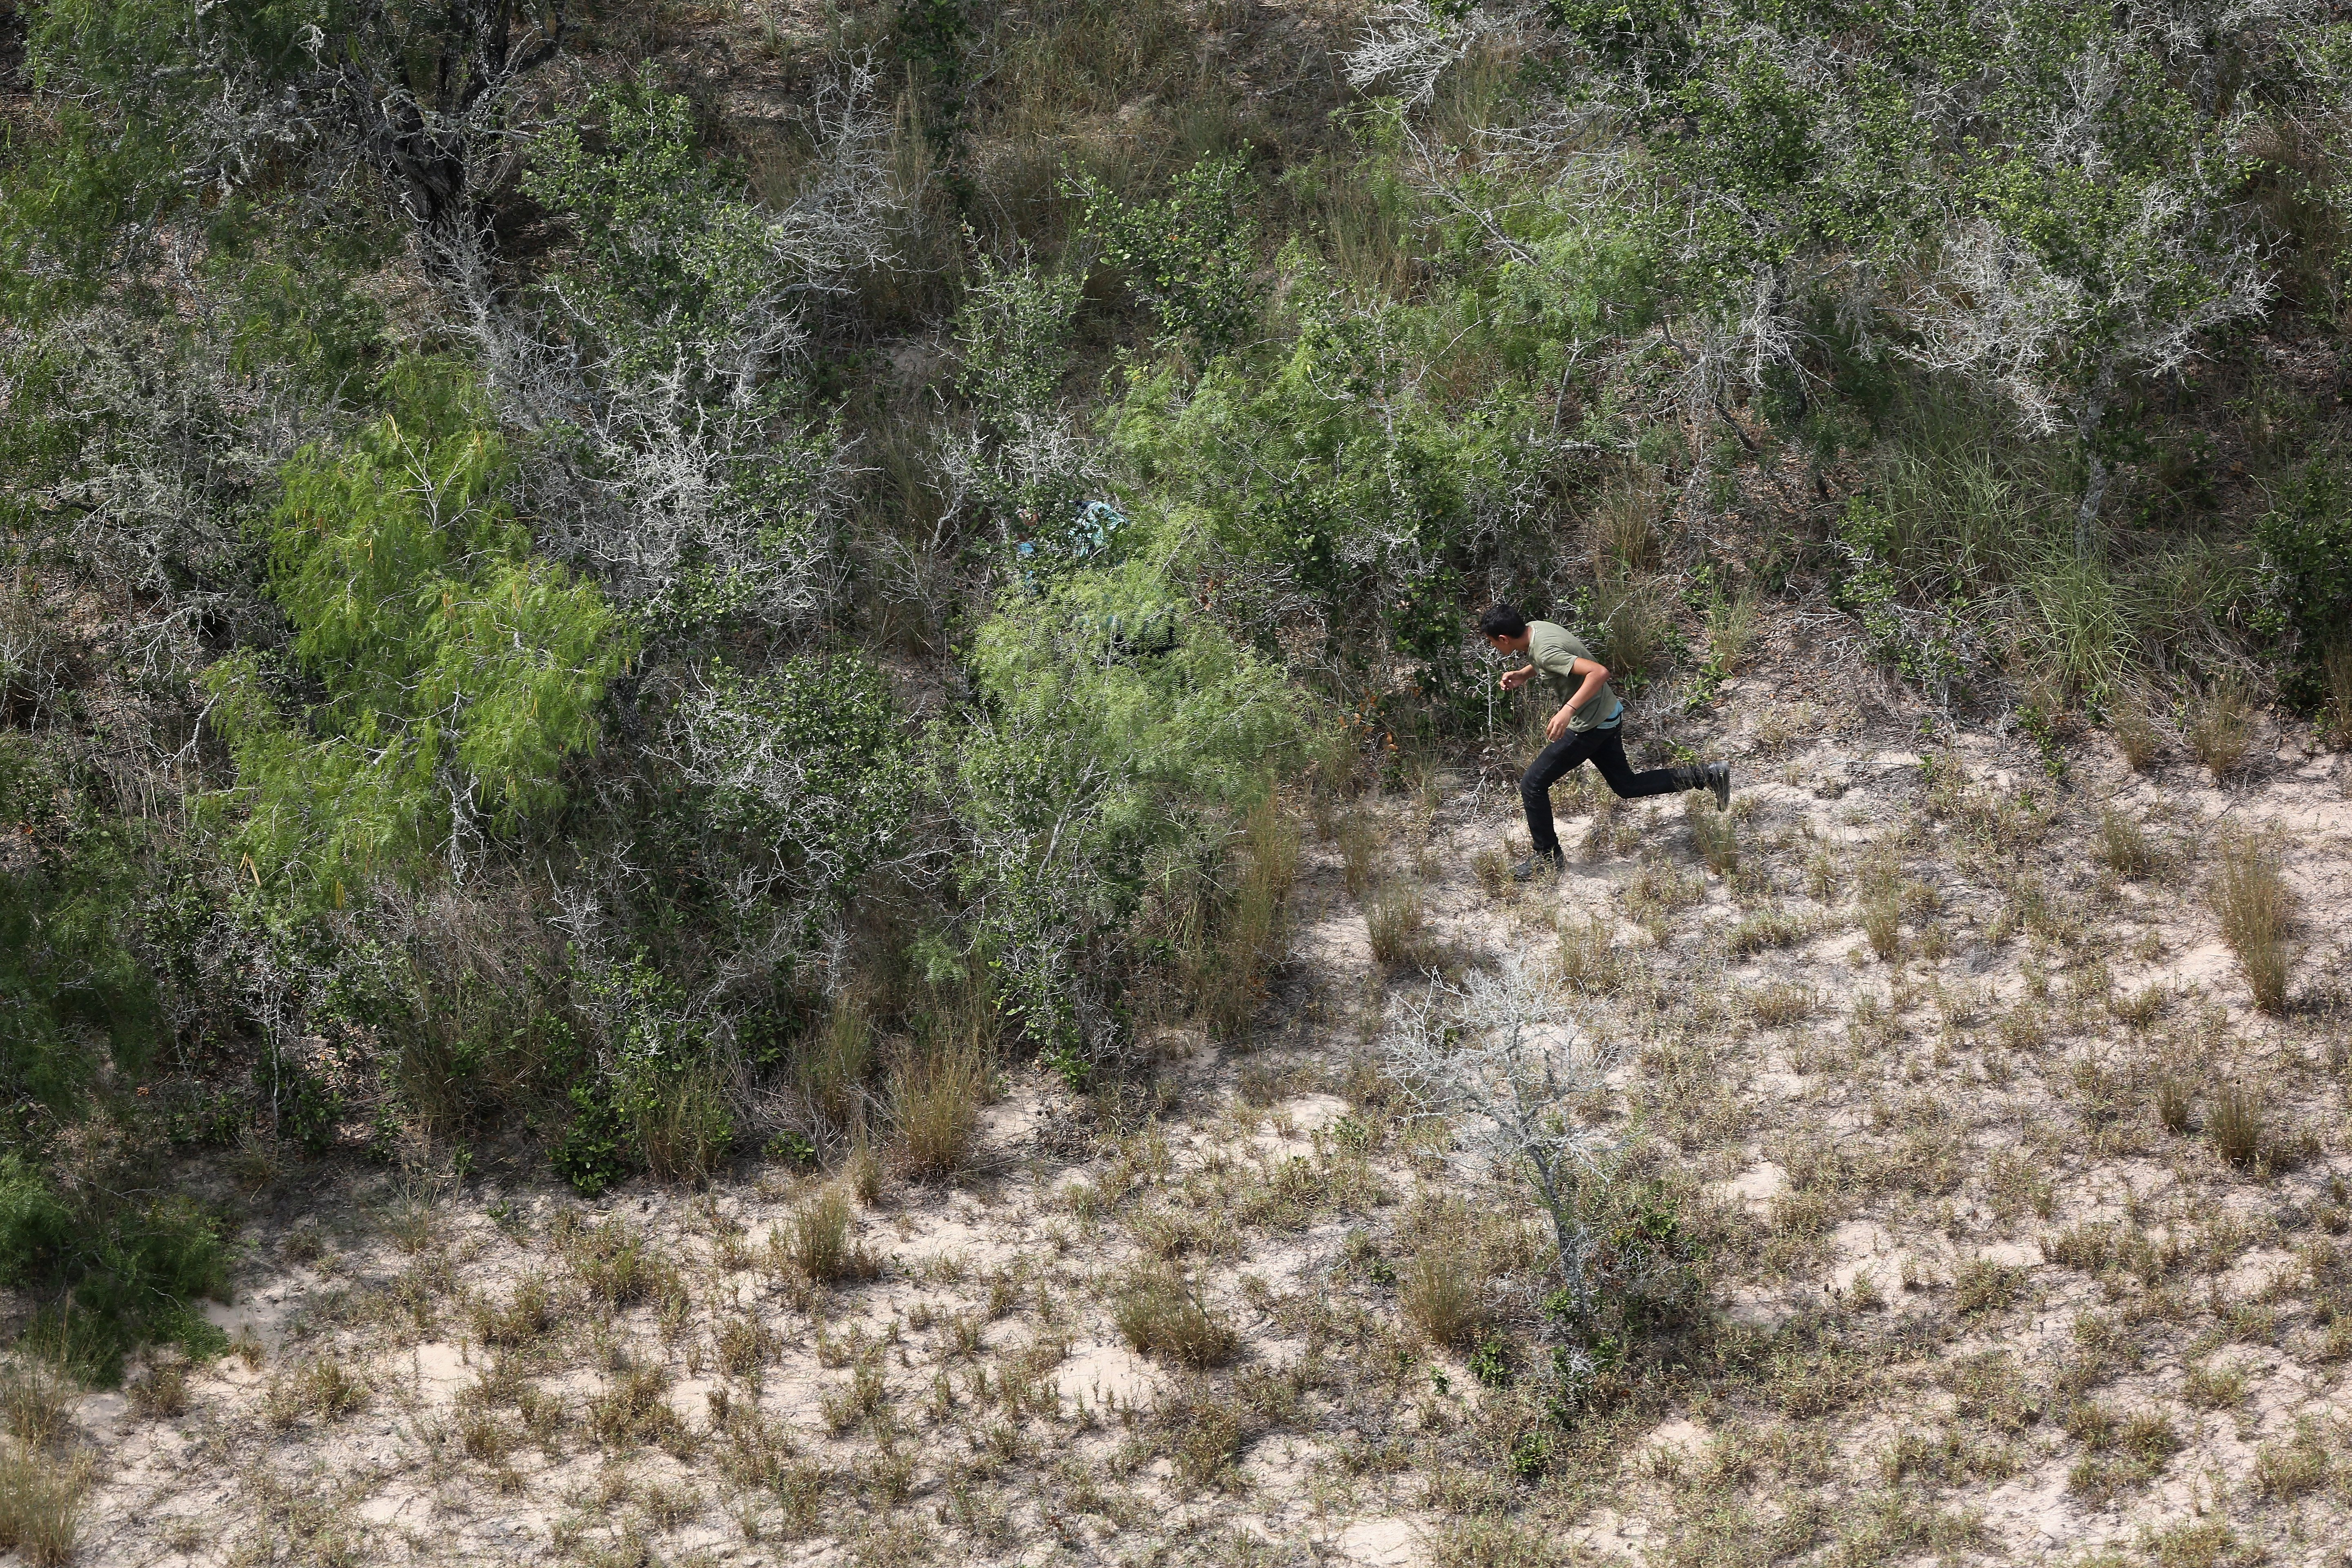 Undocumented immigrants flee into dense brush from U.S. Customs and Border Protection agents some 60 miles north of the U.S.-Mexico border in Brooks County, Texas on July 23, 2014.